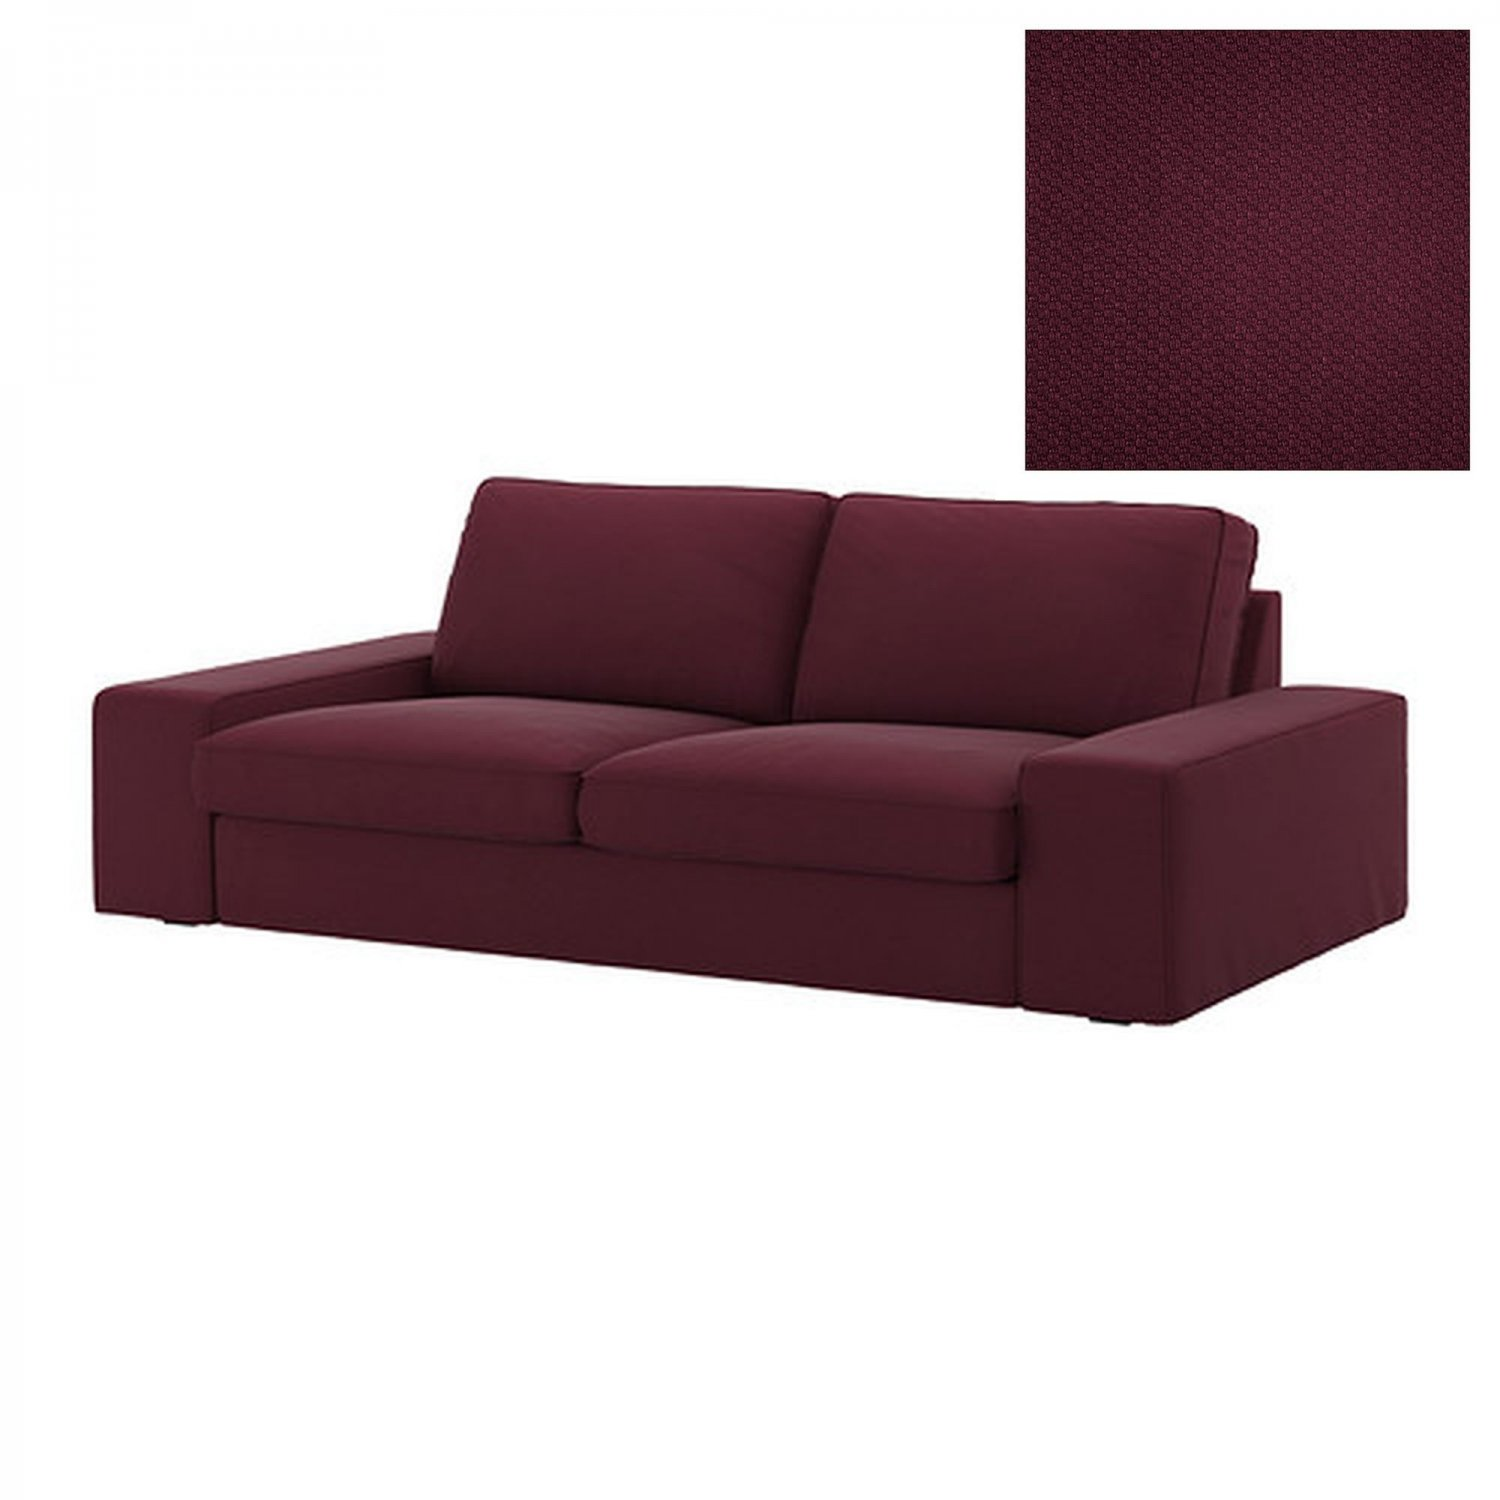 Ikea Kivik 2 Seat Sofa Slipcover Loveseat Cover Dansbo Red Lilac Red Lilac Purple